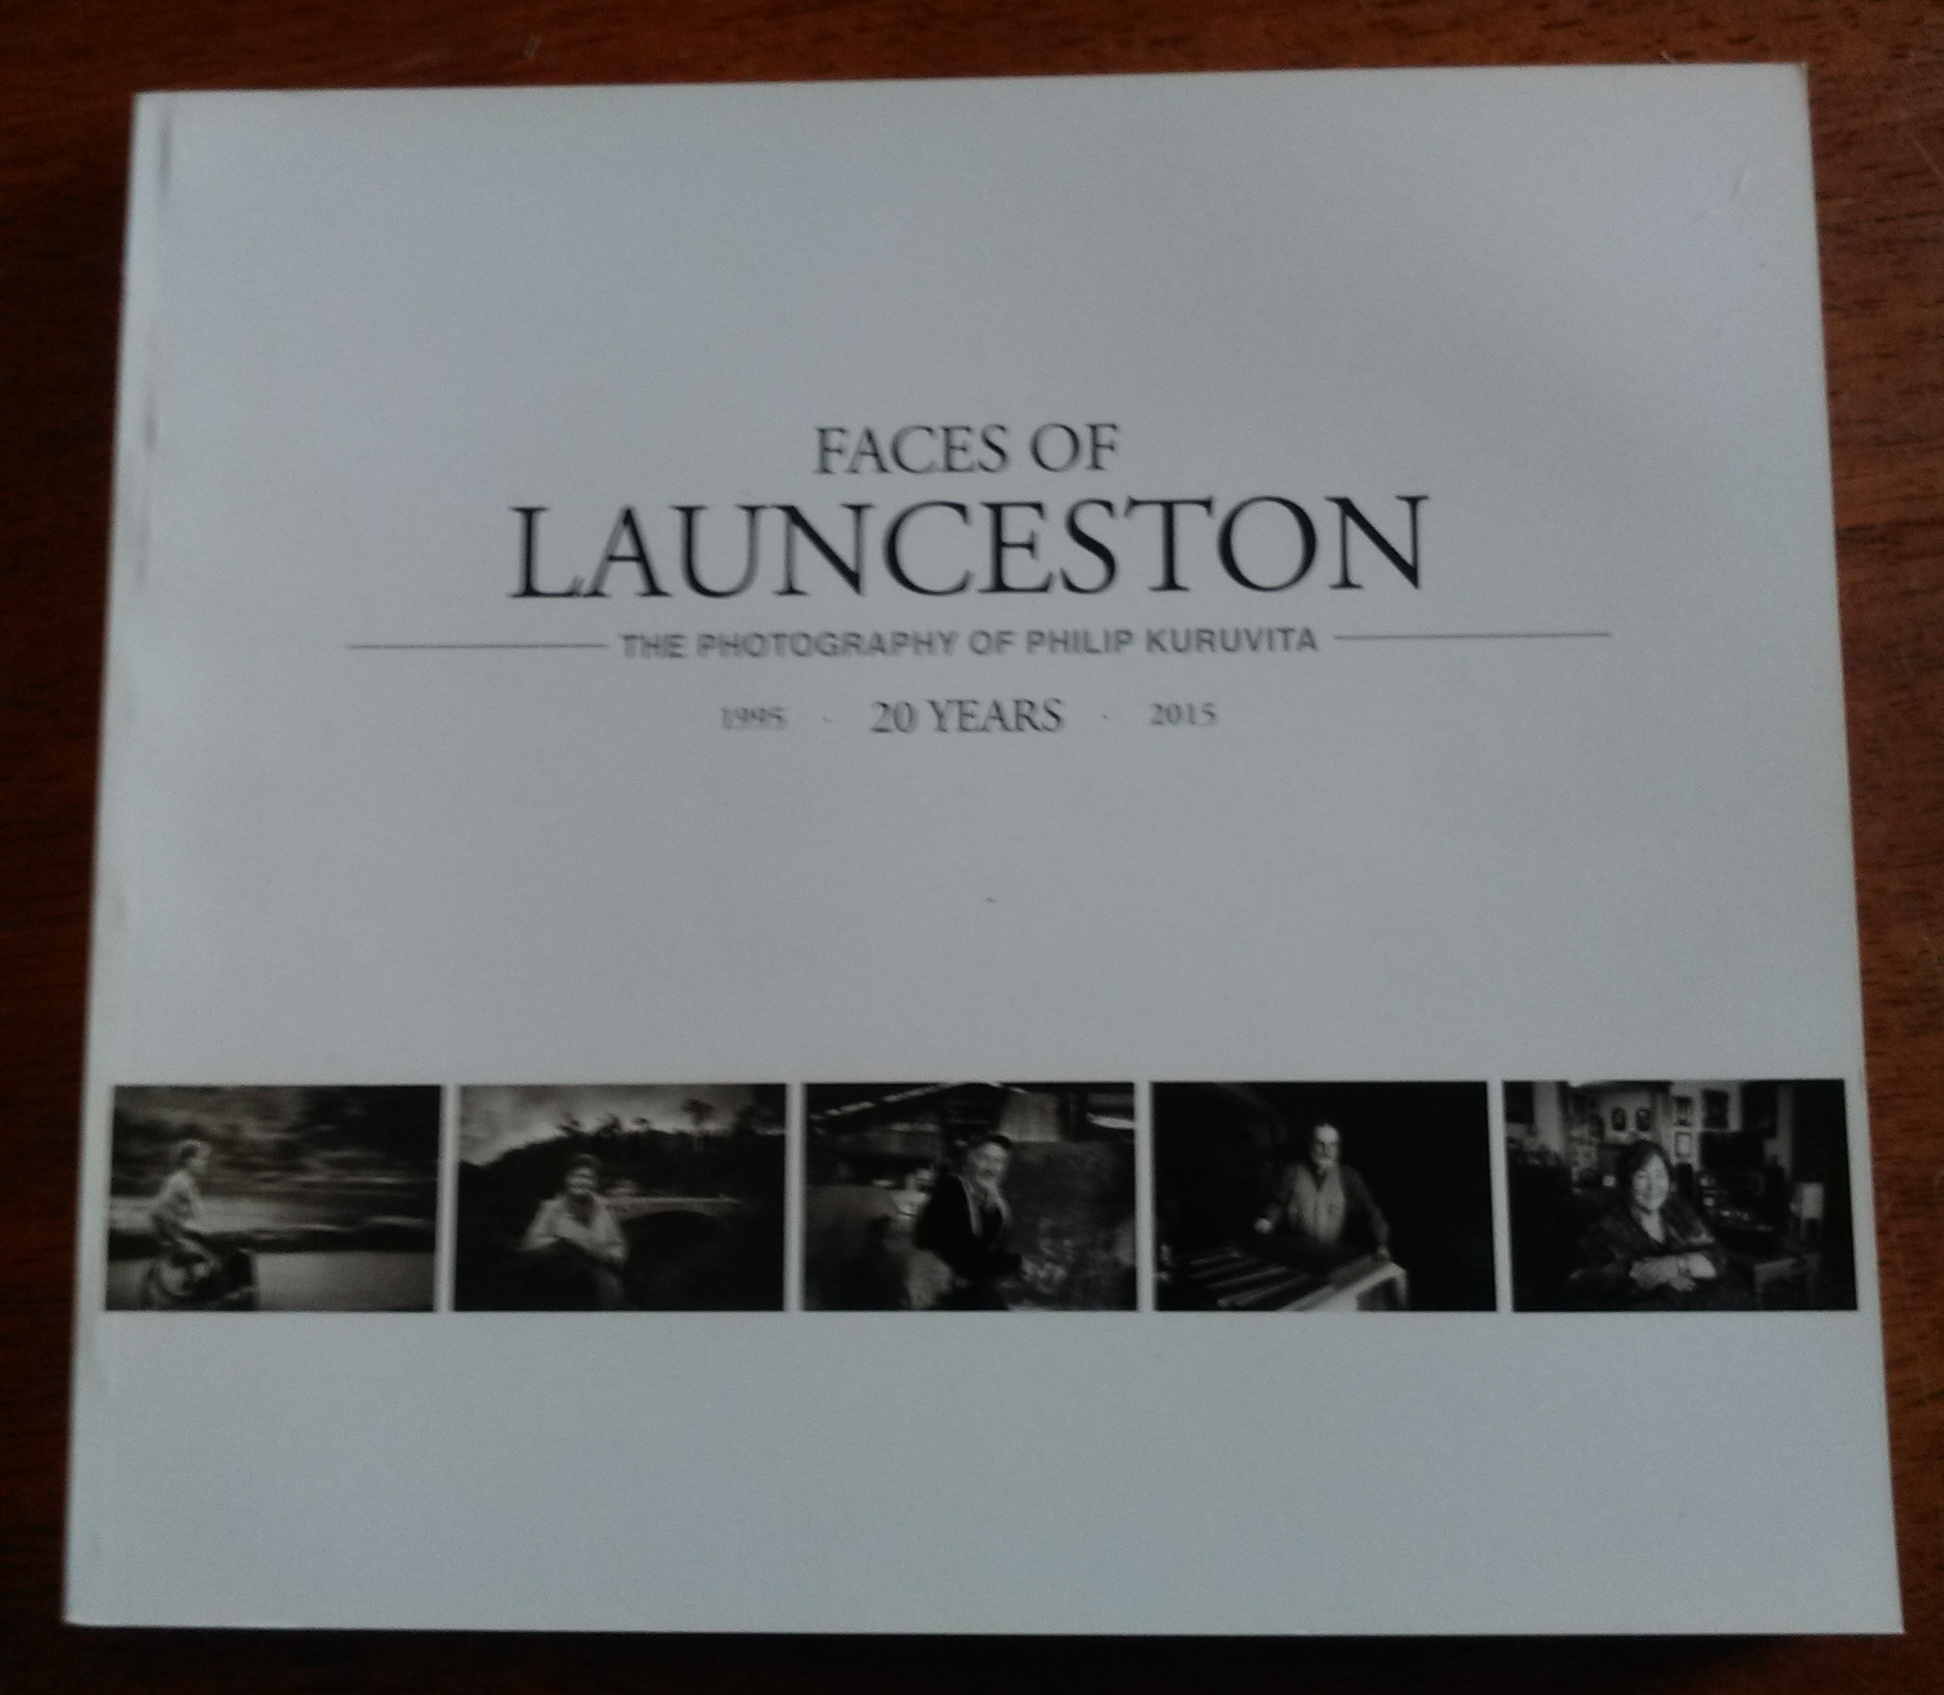 Faces of Launceston